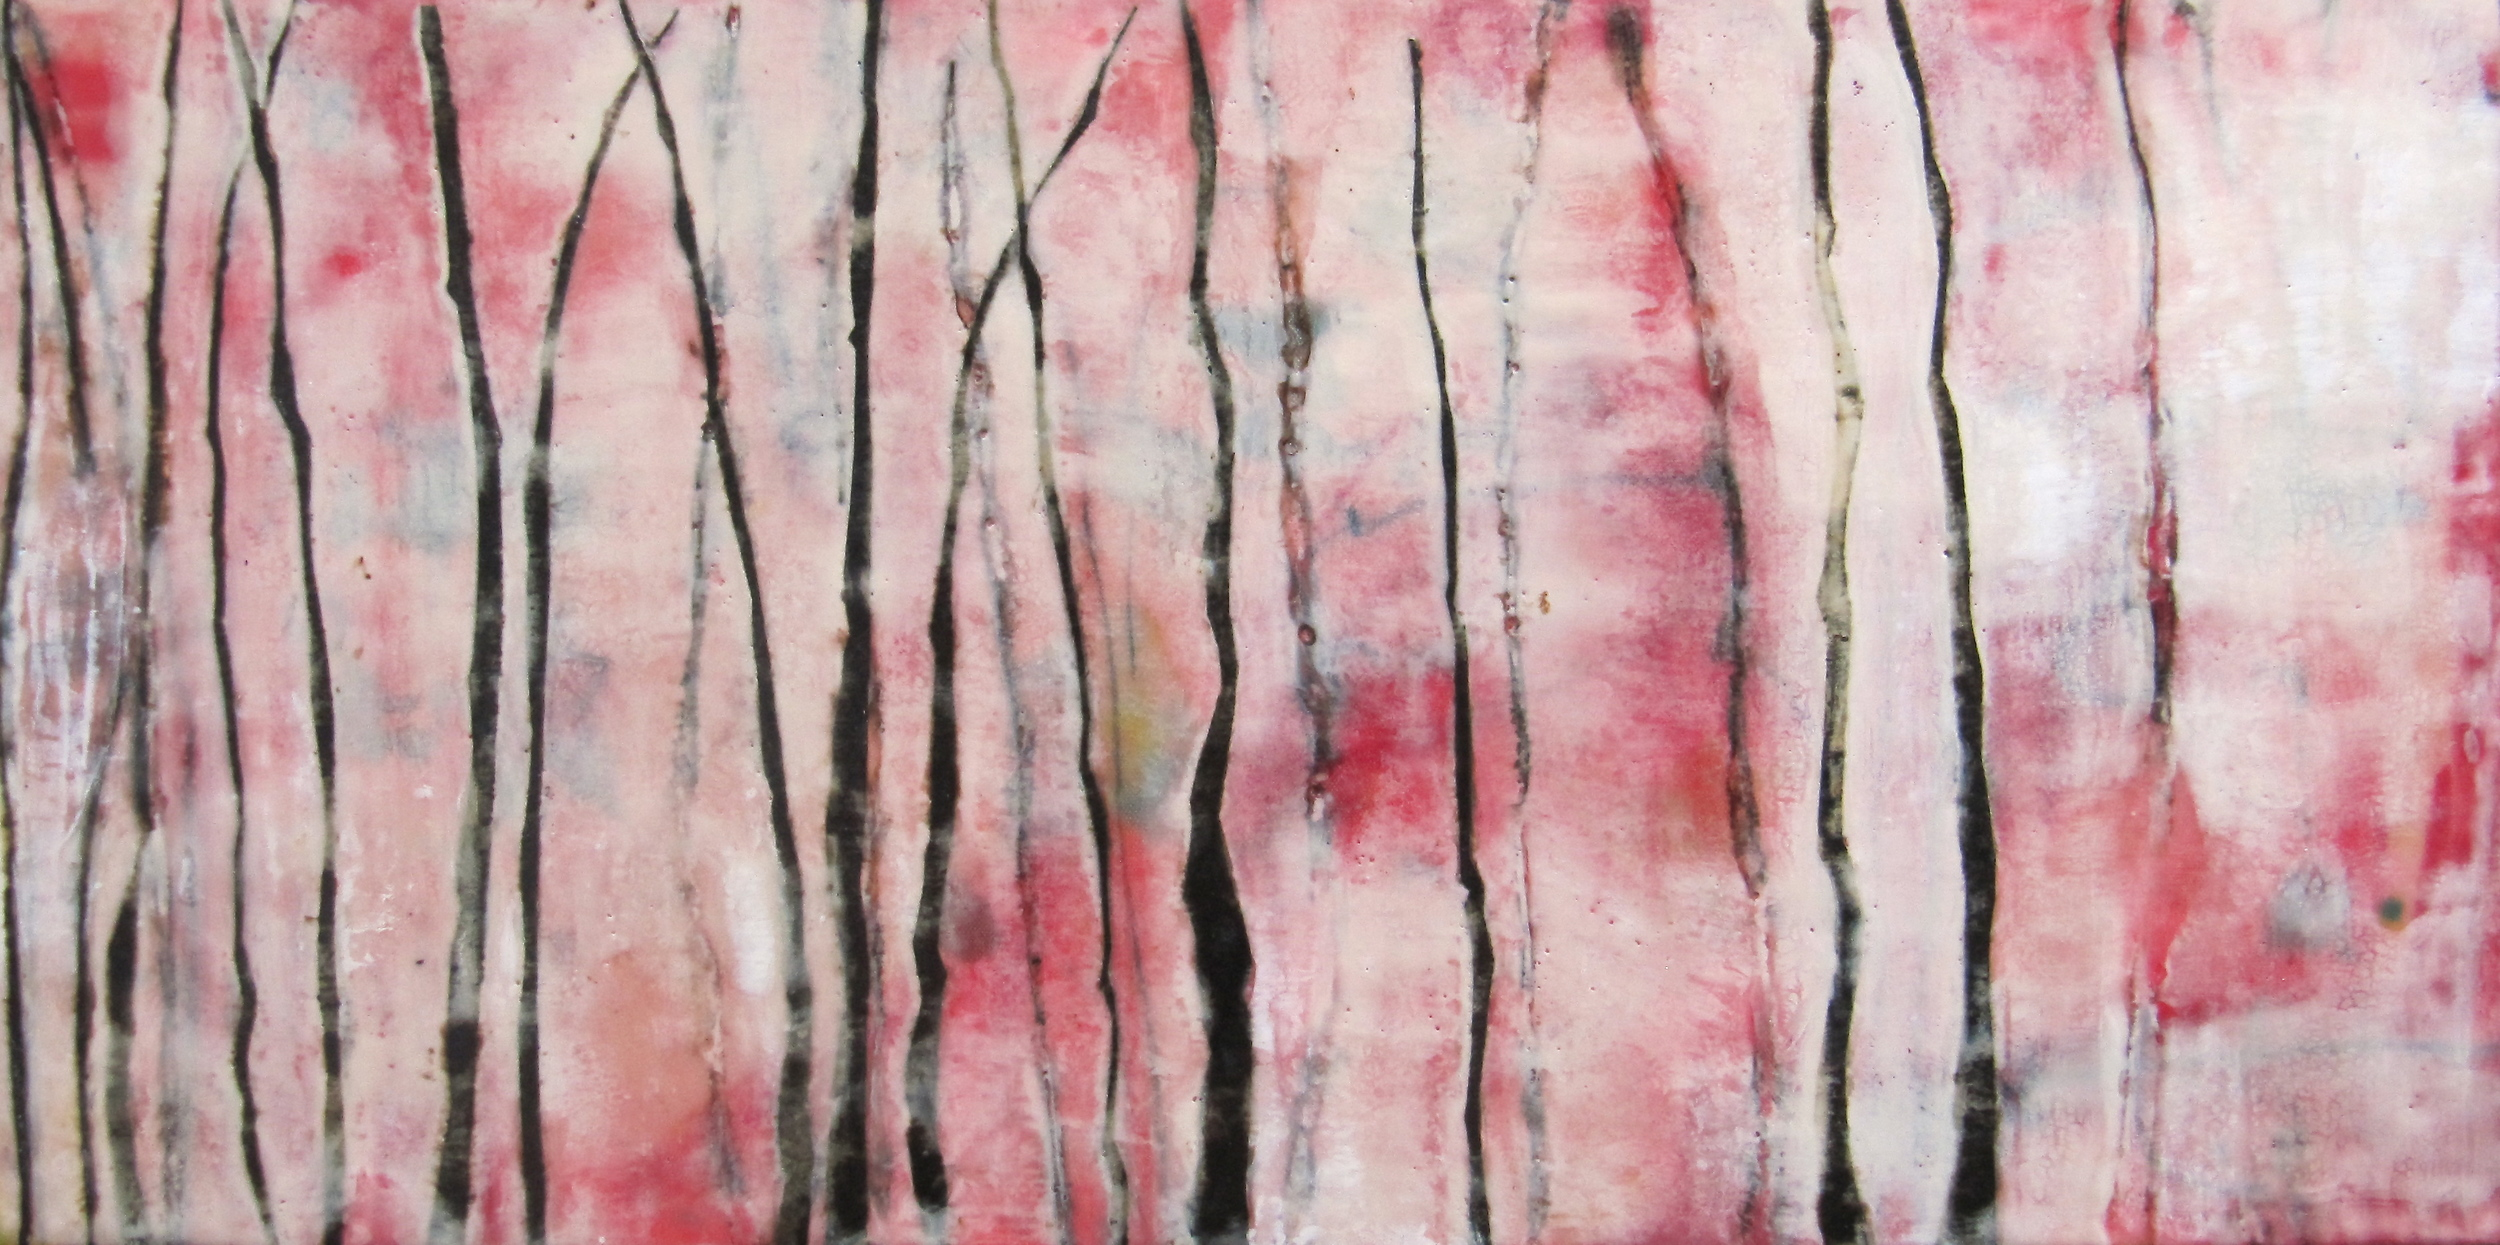 Parallel, 2009 / Encaustic on canvas on wood panel, 12 x 24 / Sold  AUCTION May 2013